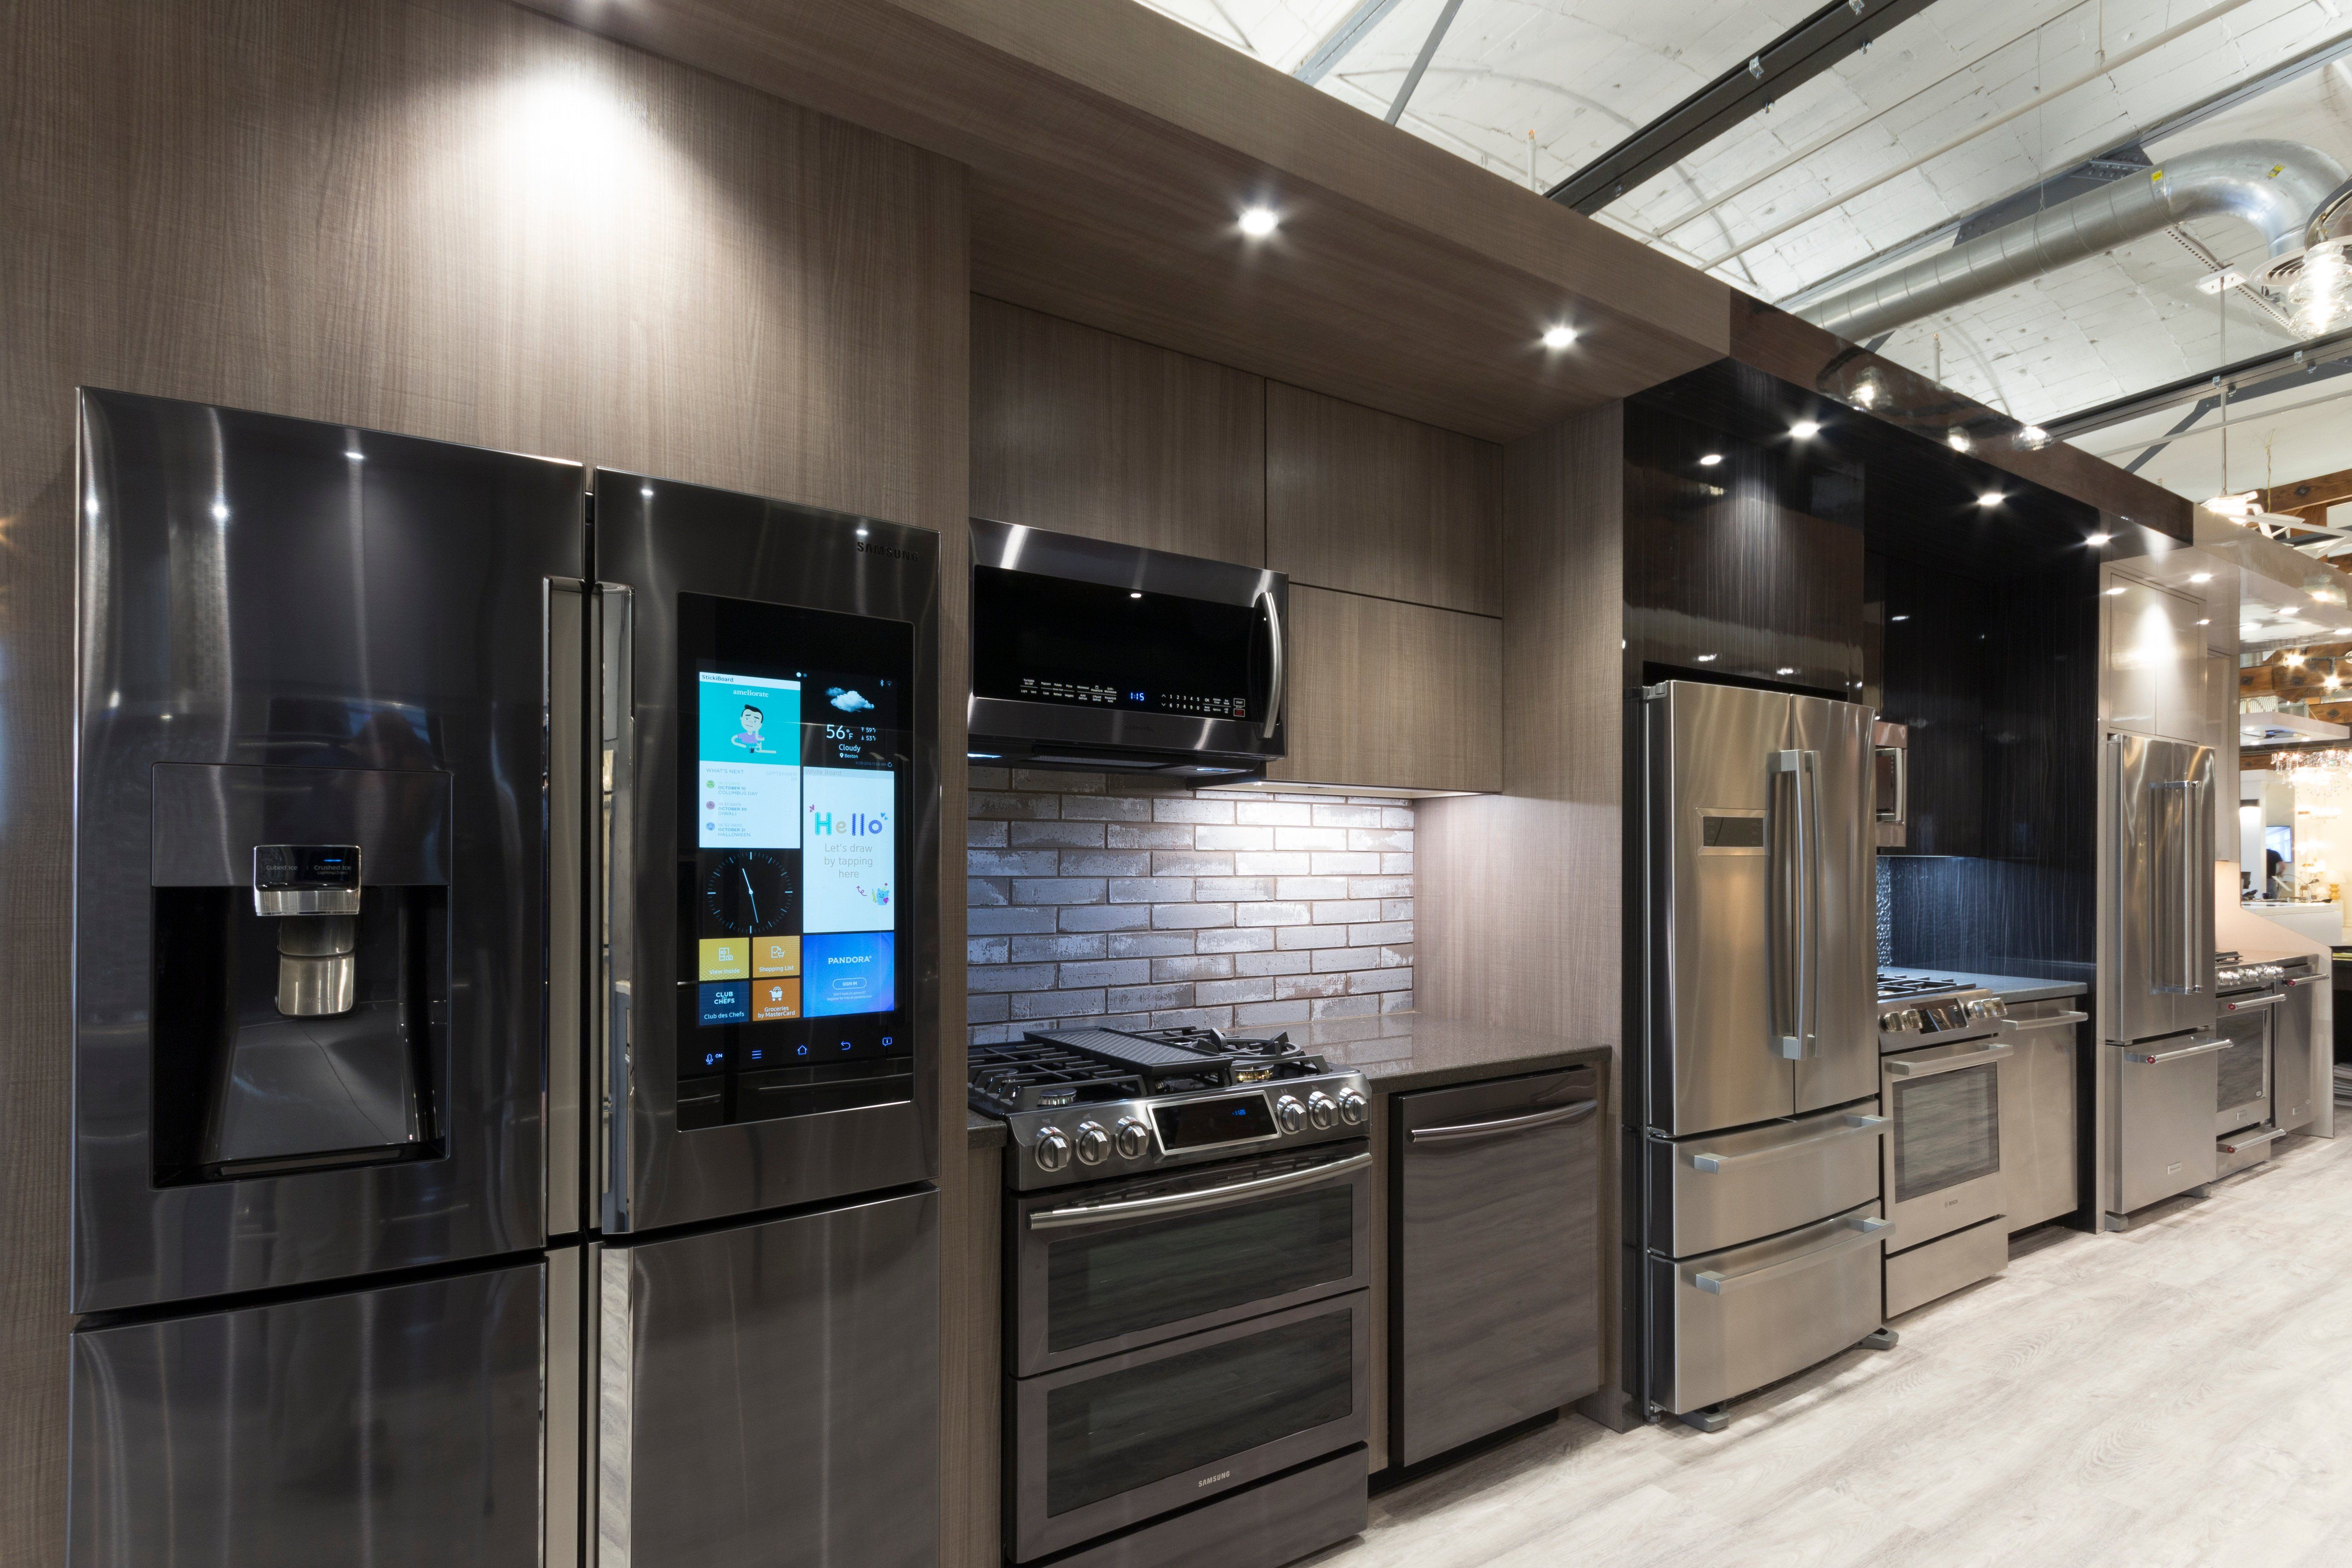 10 Best Stainless Steel Kitchen Appliance Packages Reviews Ratings Prices Luxury Appliances Samsung Kitchen Kitchen Appliance Packages